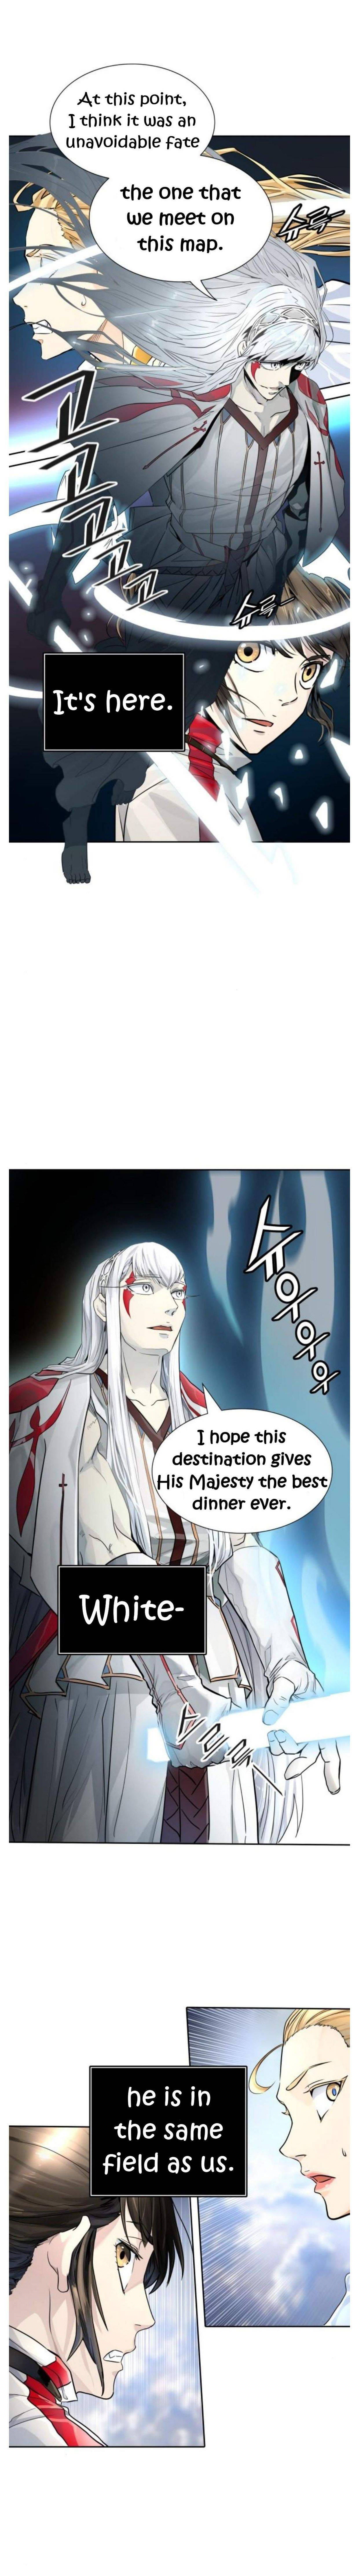 tower of god: Chapter 495 - Page 33